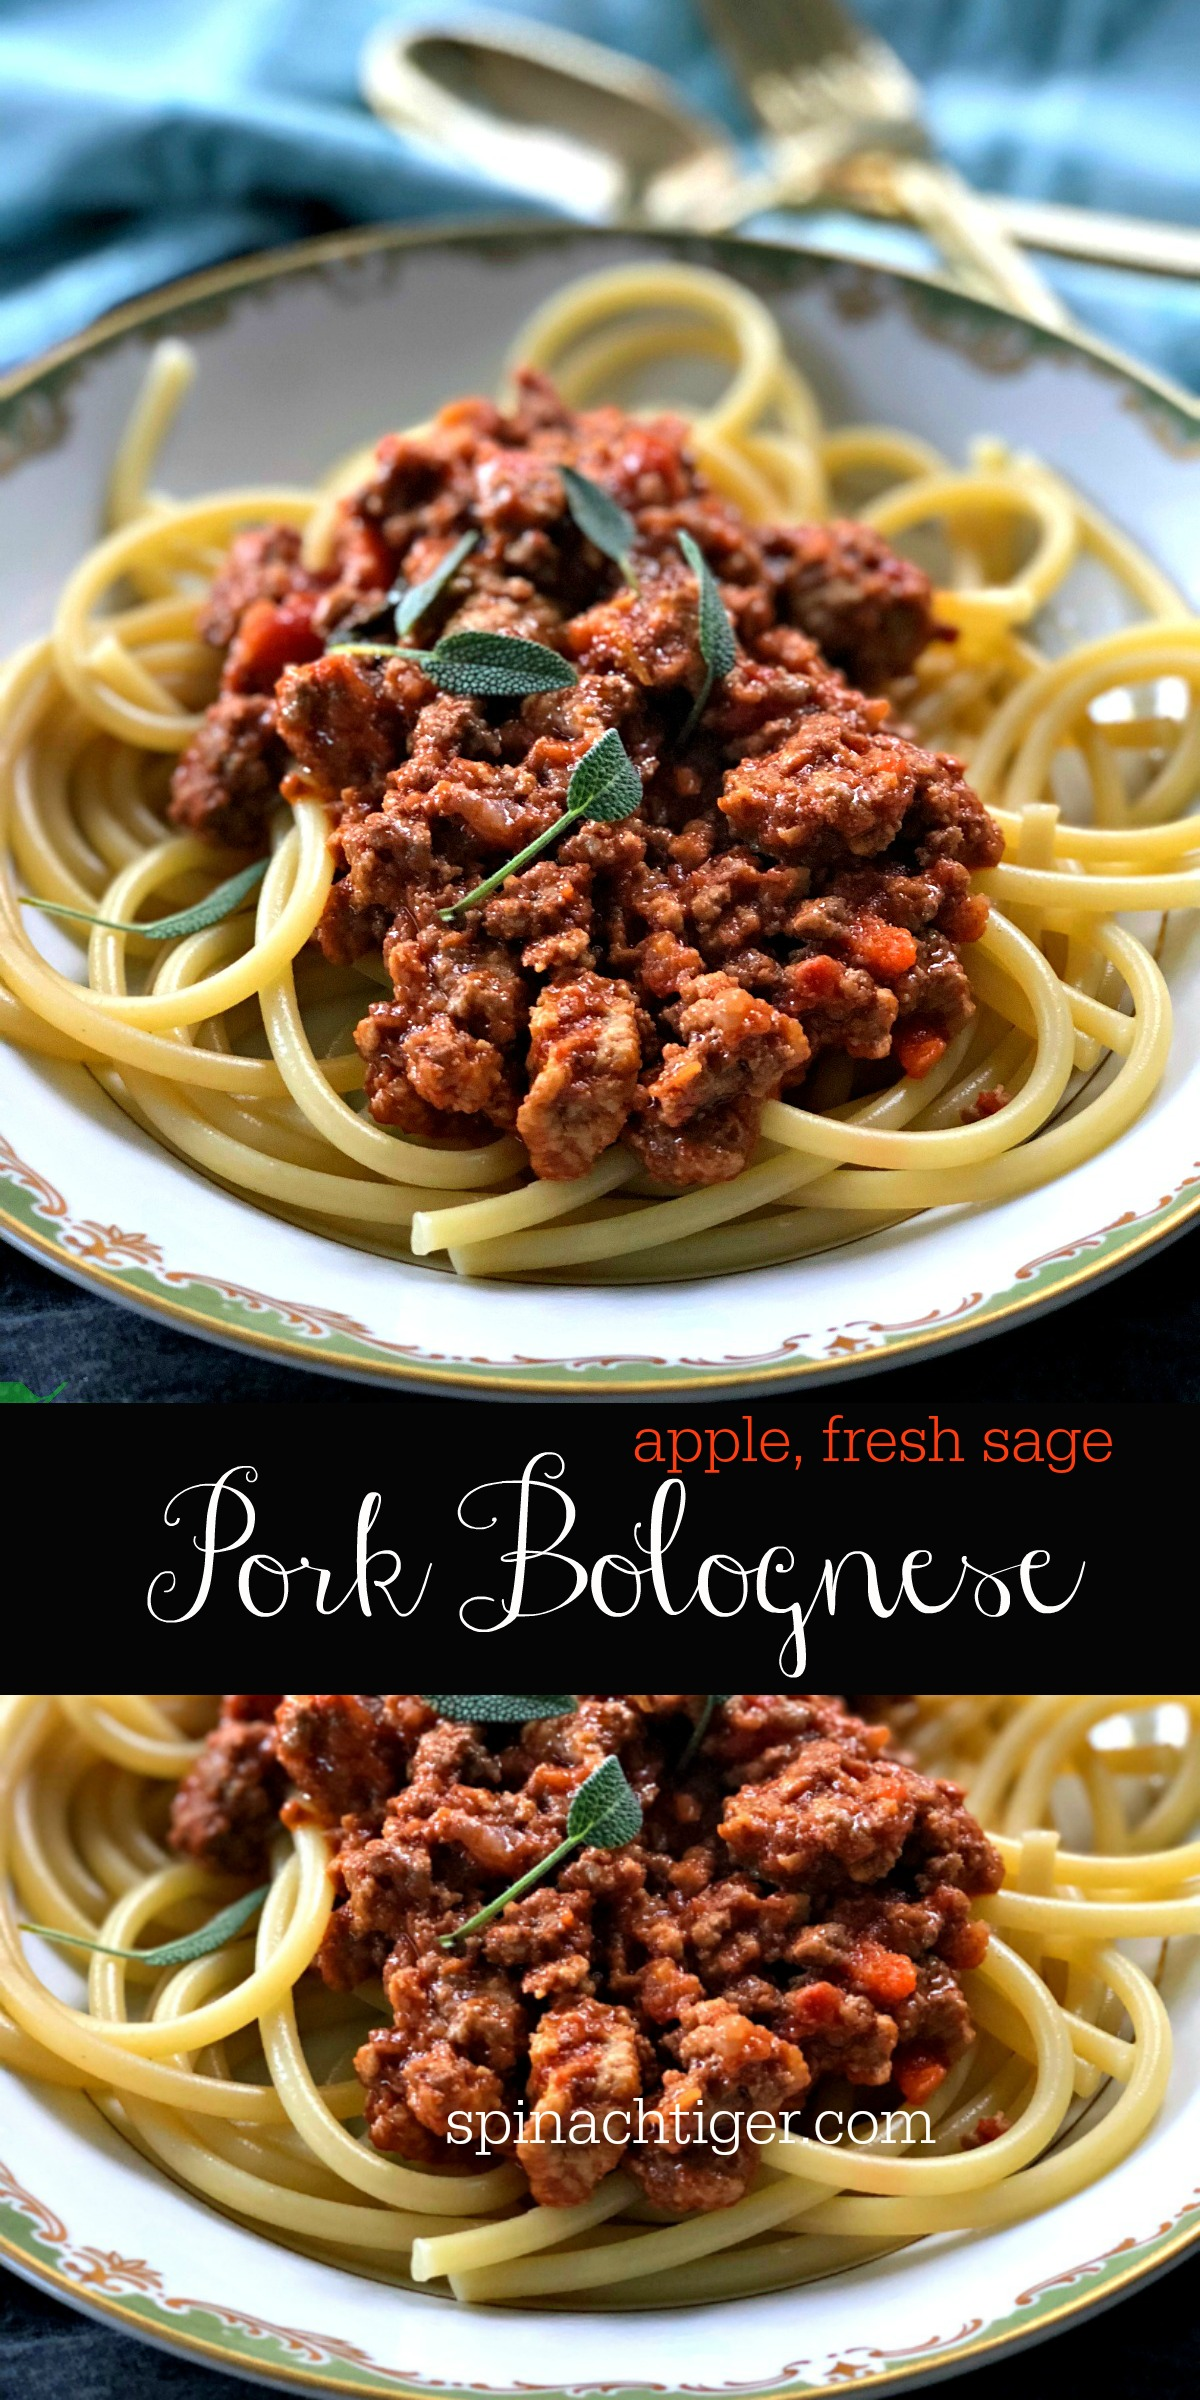 Easy Spaghetti Bolognese Recipe from Spinach Tiger